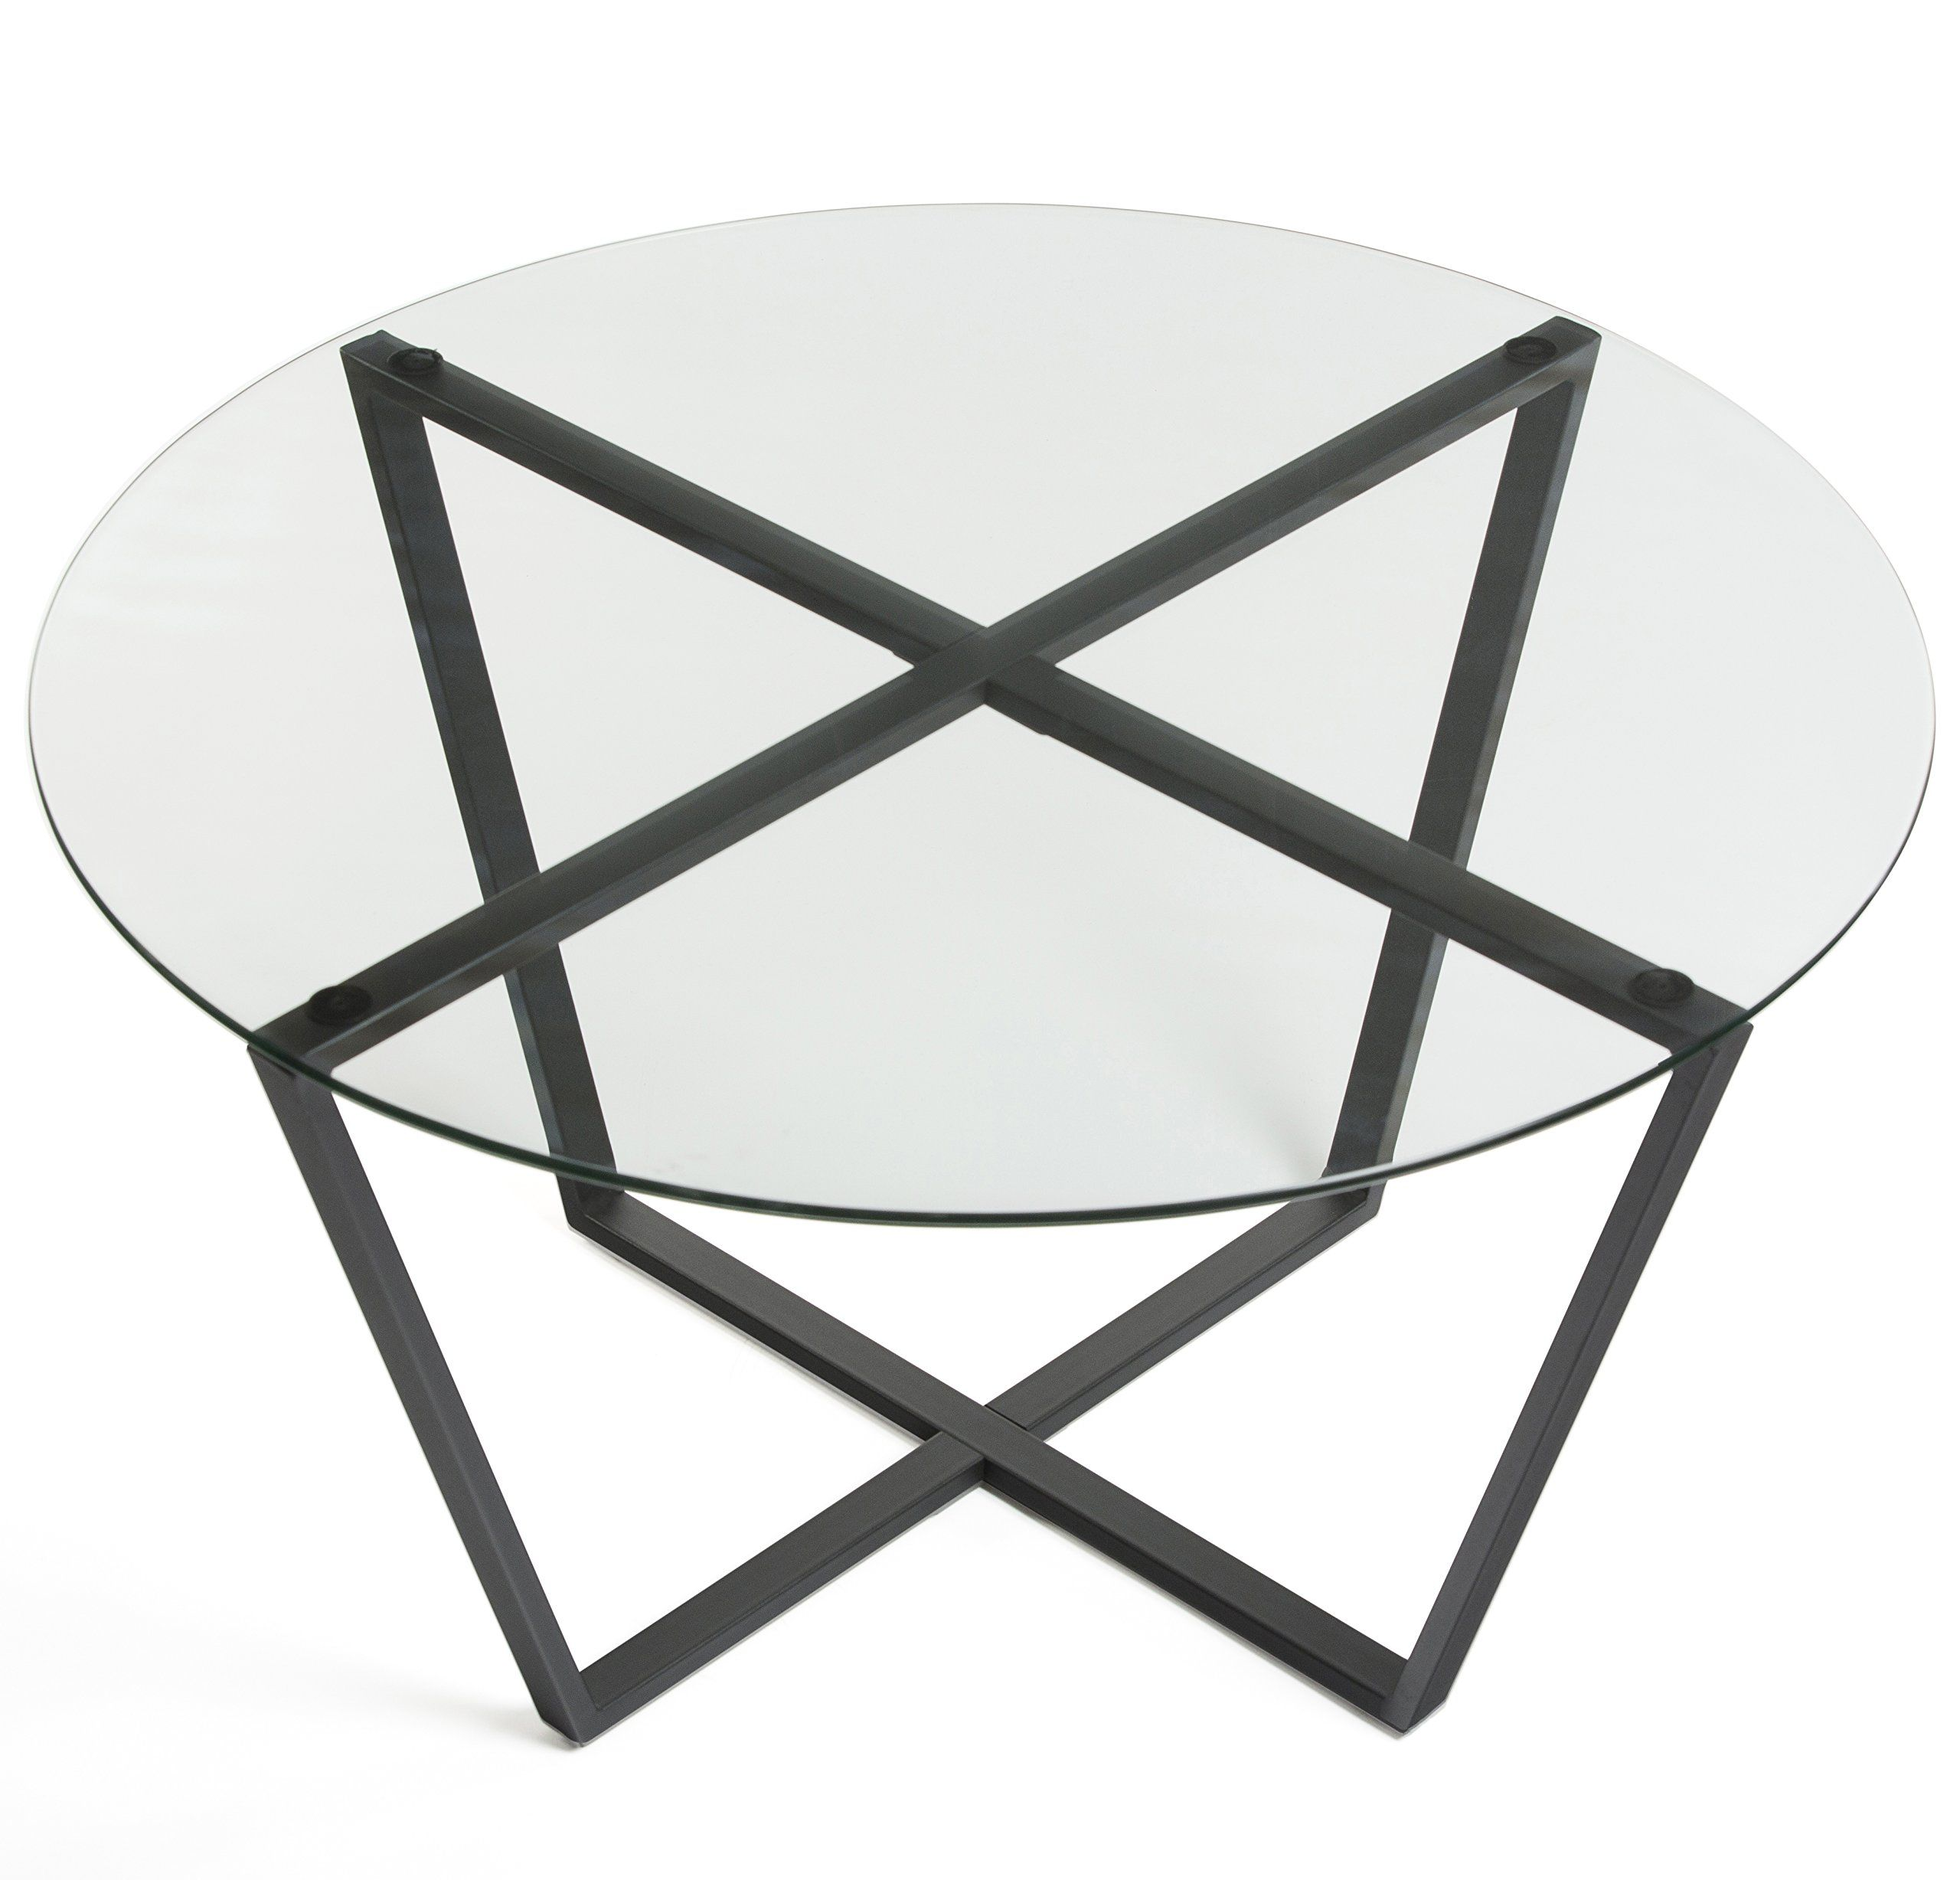 Mango Steam Metro Glass Coffee Table Clear Top Black Base To View Further For This Item Visit The Image Link Glass Coffee Table Glass End Tables Table [ 2455 x 2560 Pixel ]